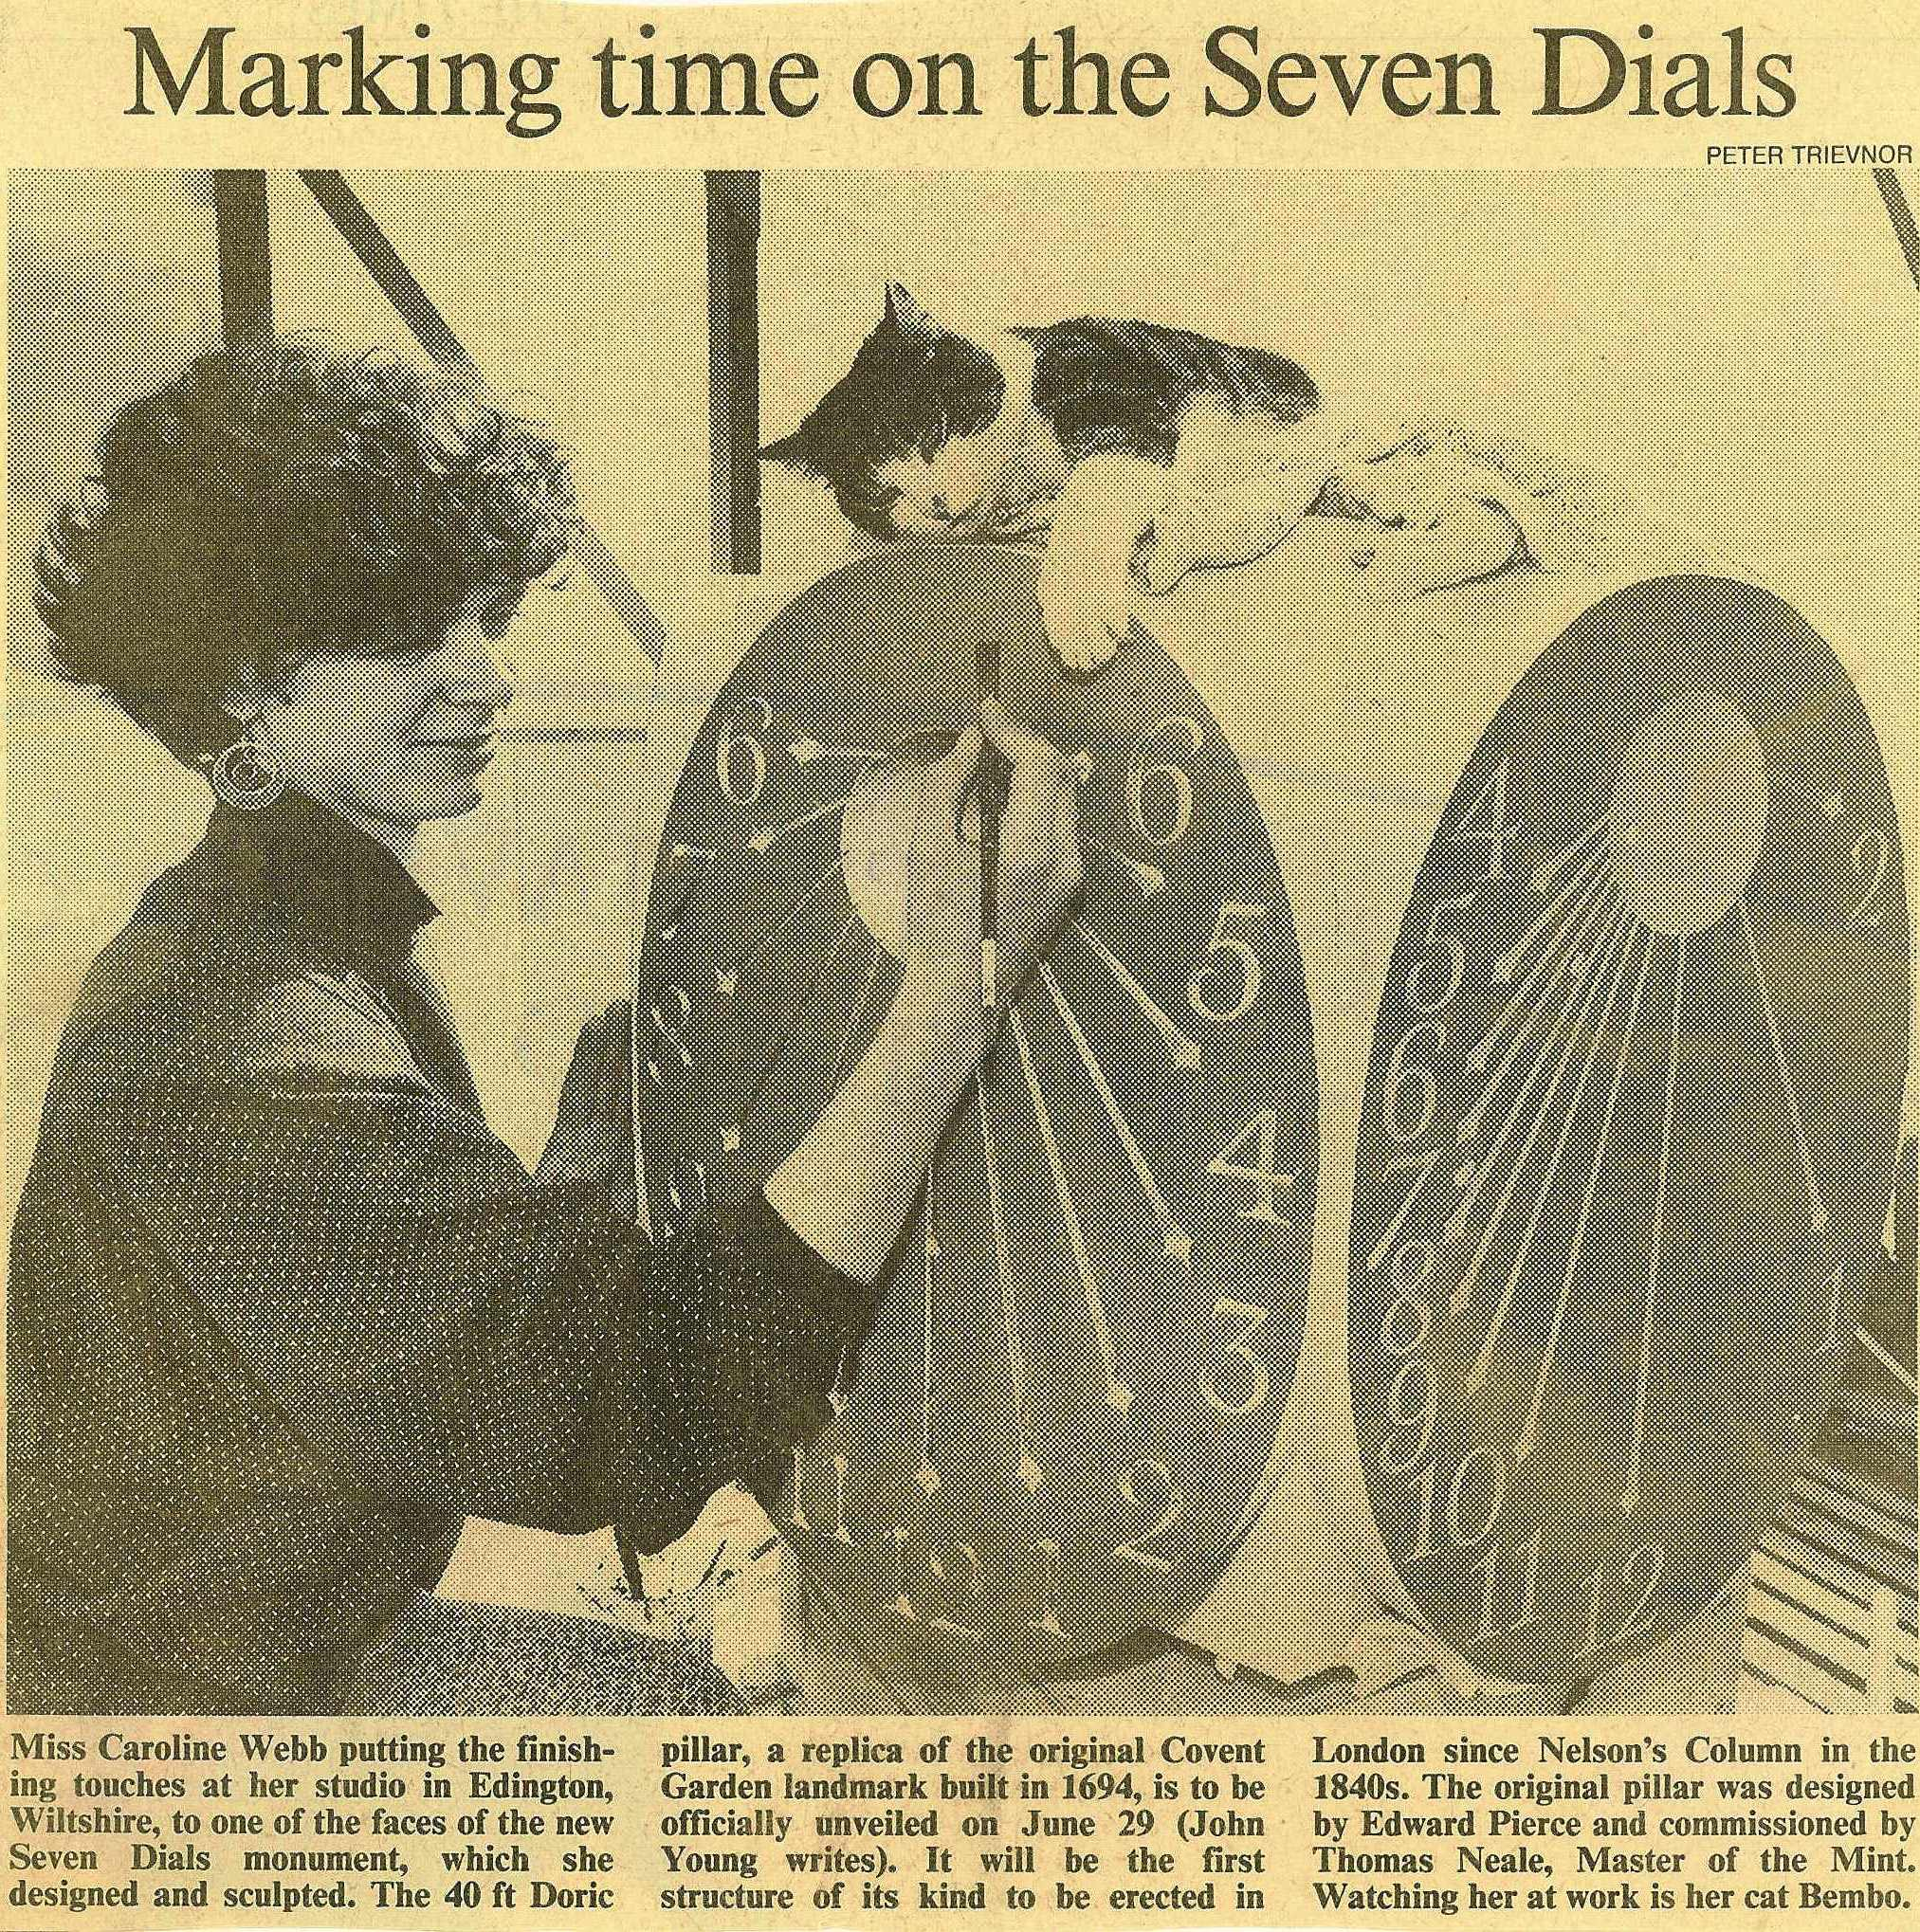 3 May 1989 – The Times: Caroline Webb marking time on the Seven Dials.